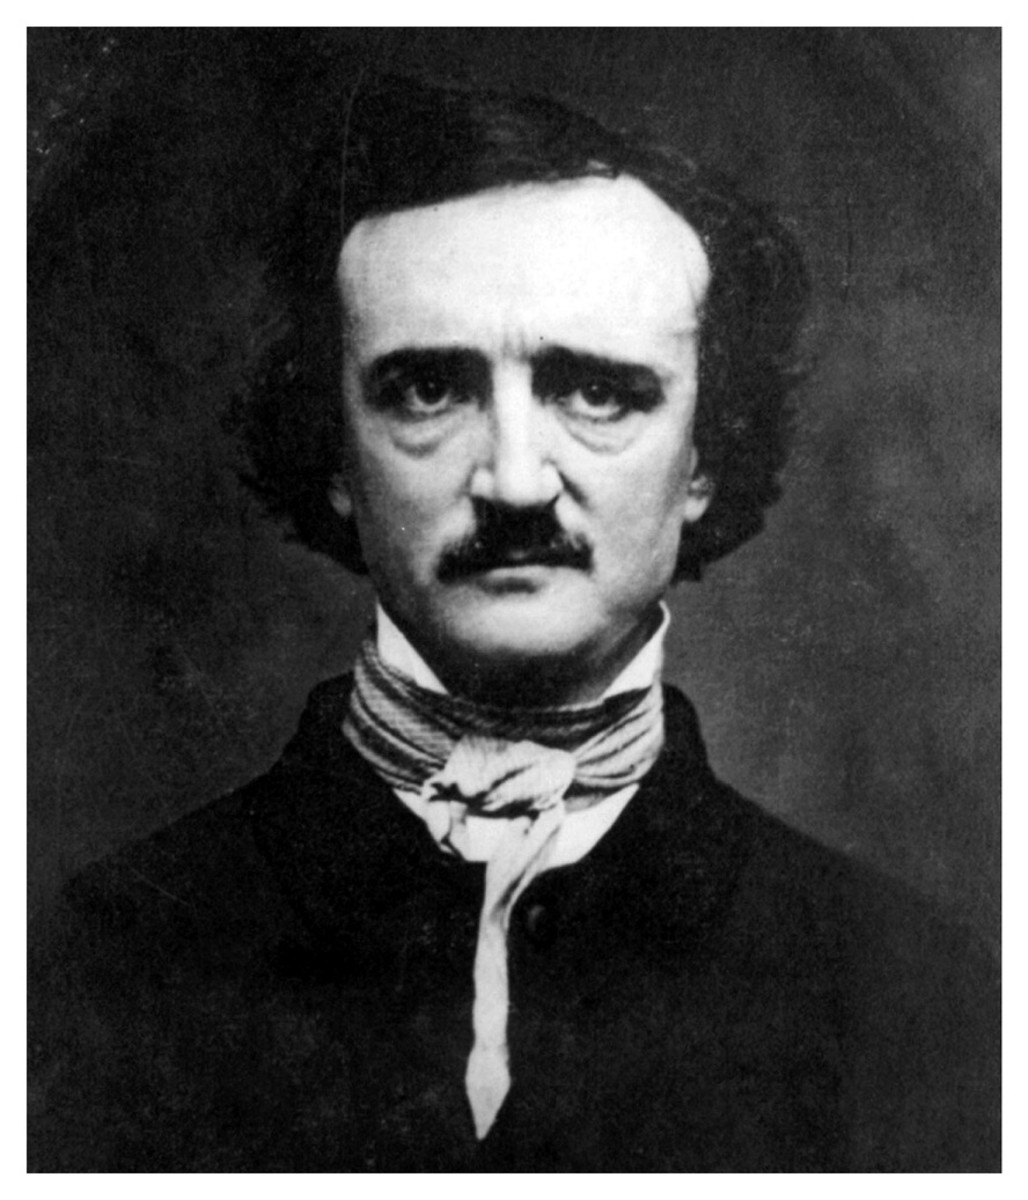 An Analysis of Edgar Allan Poe's 'The Cask of Amontillado'